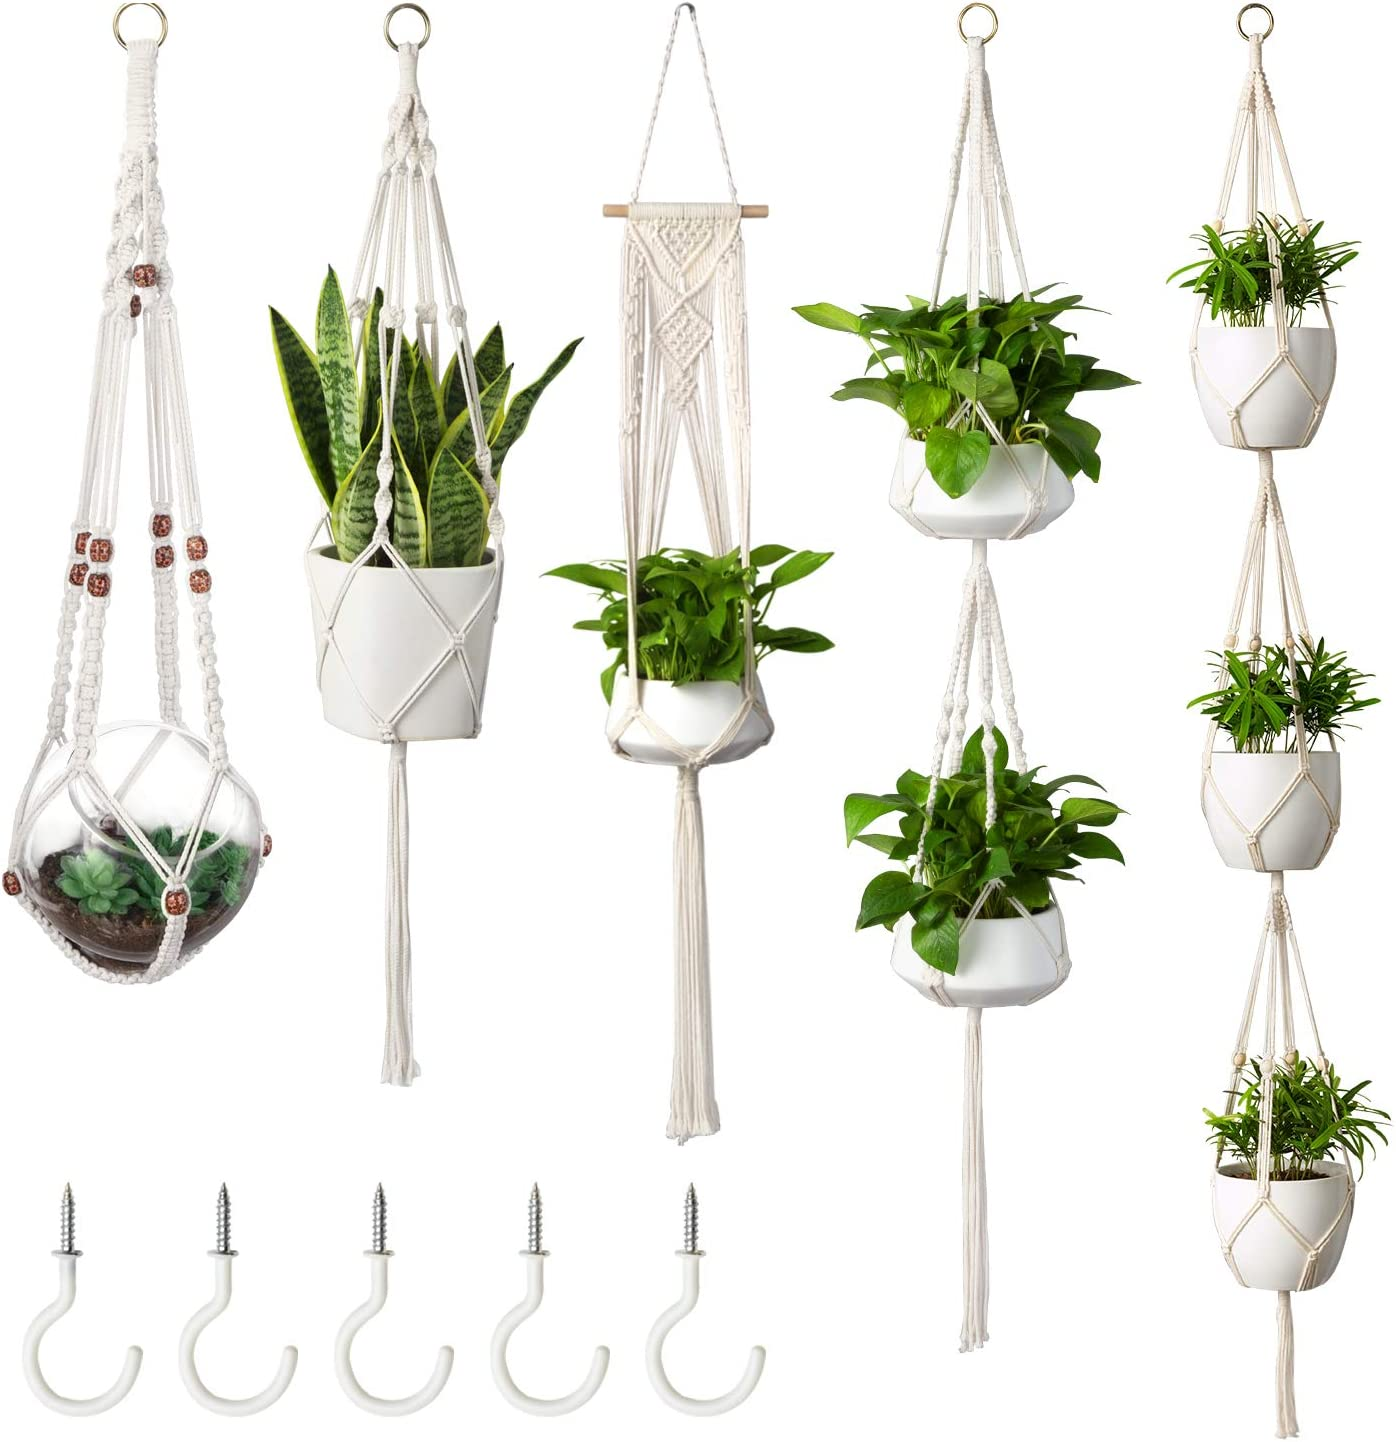 MoonLa 5-Pack Macrame Plant Hangers with 5 Hooks, Indoor Outdoor Hanging Planters Set Hanging Plant Holder Stand Flower Pots Boho Home Decor Cotton Rope, 4 Legs, 5 Sizes